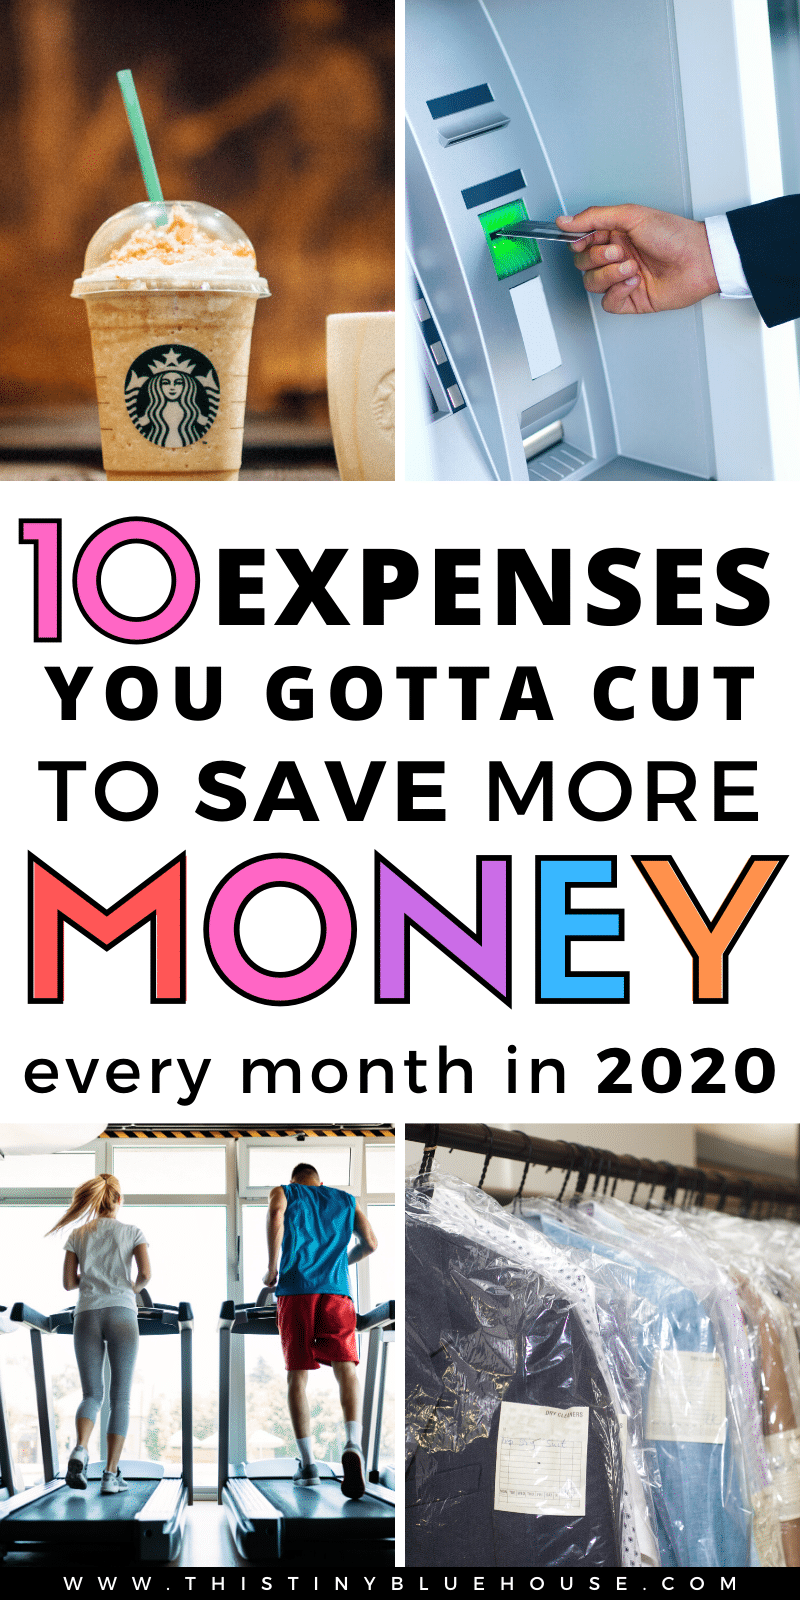 Are you looking to scale back and seriously cut costs this year? Here are 12 realistic household expenses that you can cut right now to start saving more cash in 2020! #moneysavingtips #waystosavemoney #expensestocutoutofbudget #slashingbudget #waystosavemoneymonthly #frugalliving #waystosavemoney #easywaystosavemoney #moneysavinghacks #easywaystosavemoney #bestwaystosavemoney #simplewaystosavemoney